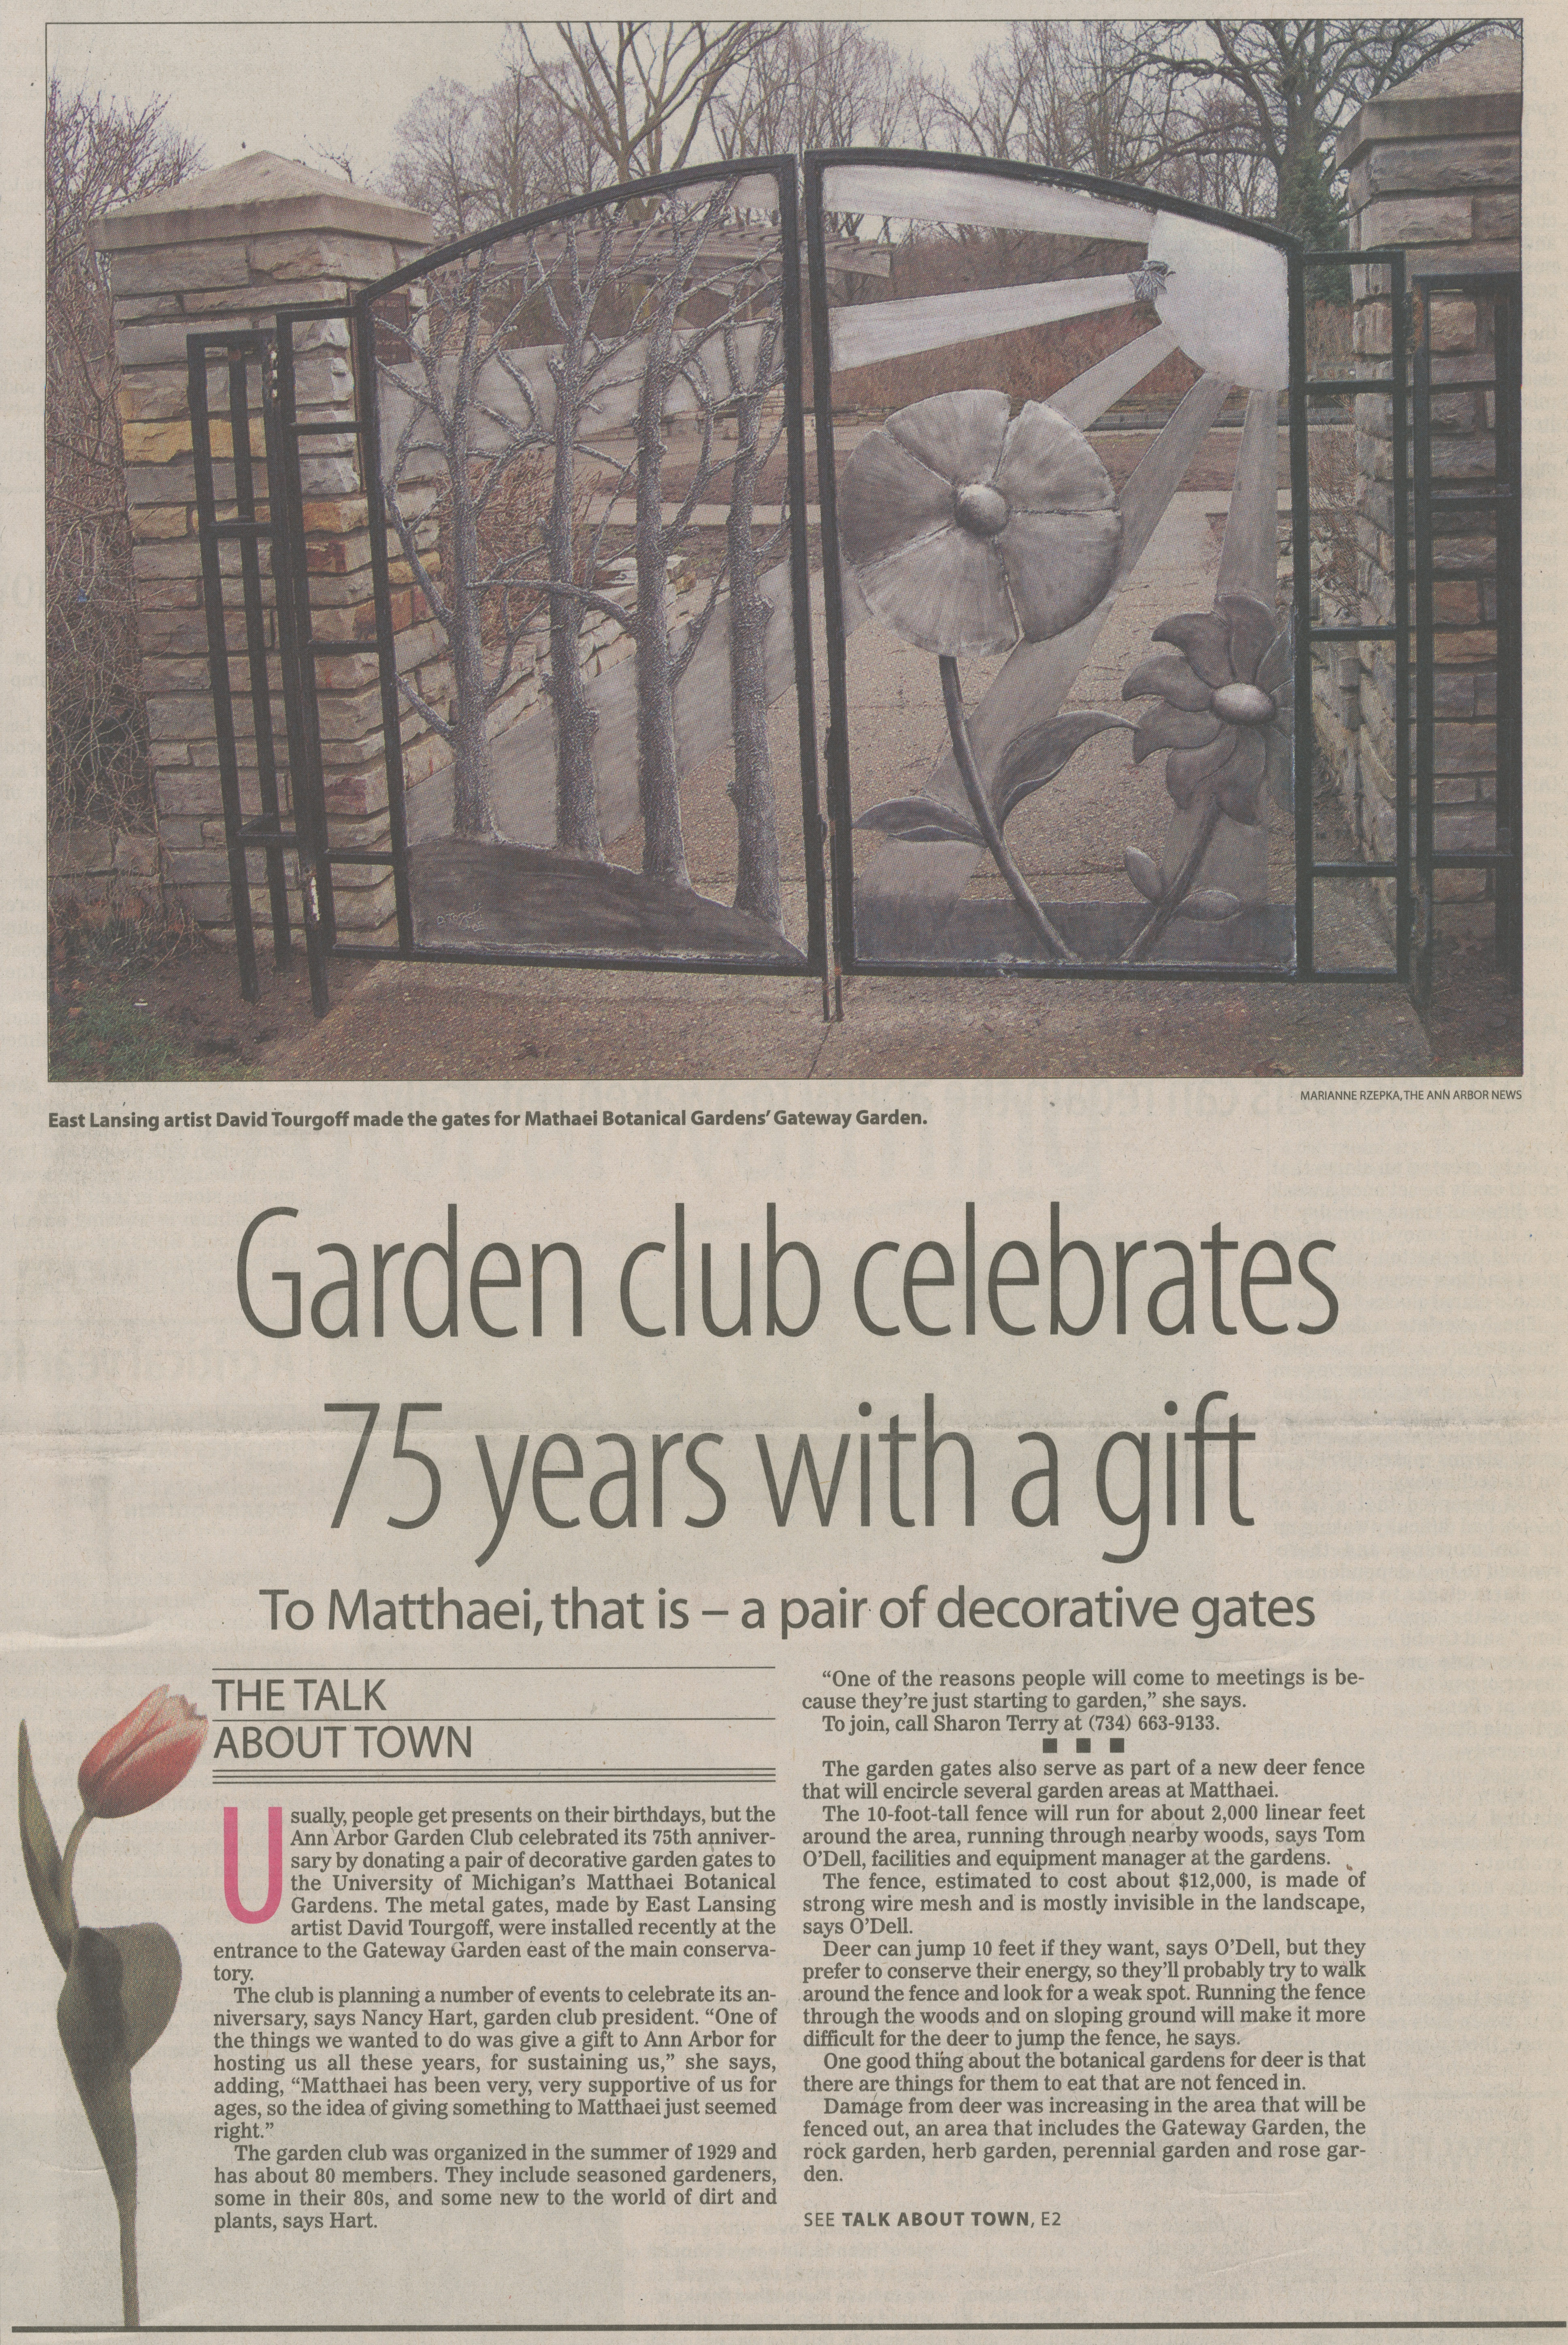 Garden Club Celebrates 75 Years With A Gift - To Matthaei, That Is - A Pair of Decorative Gates image